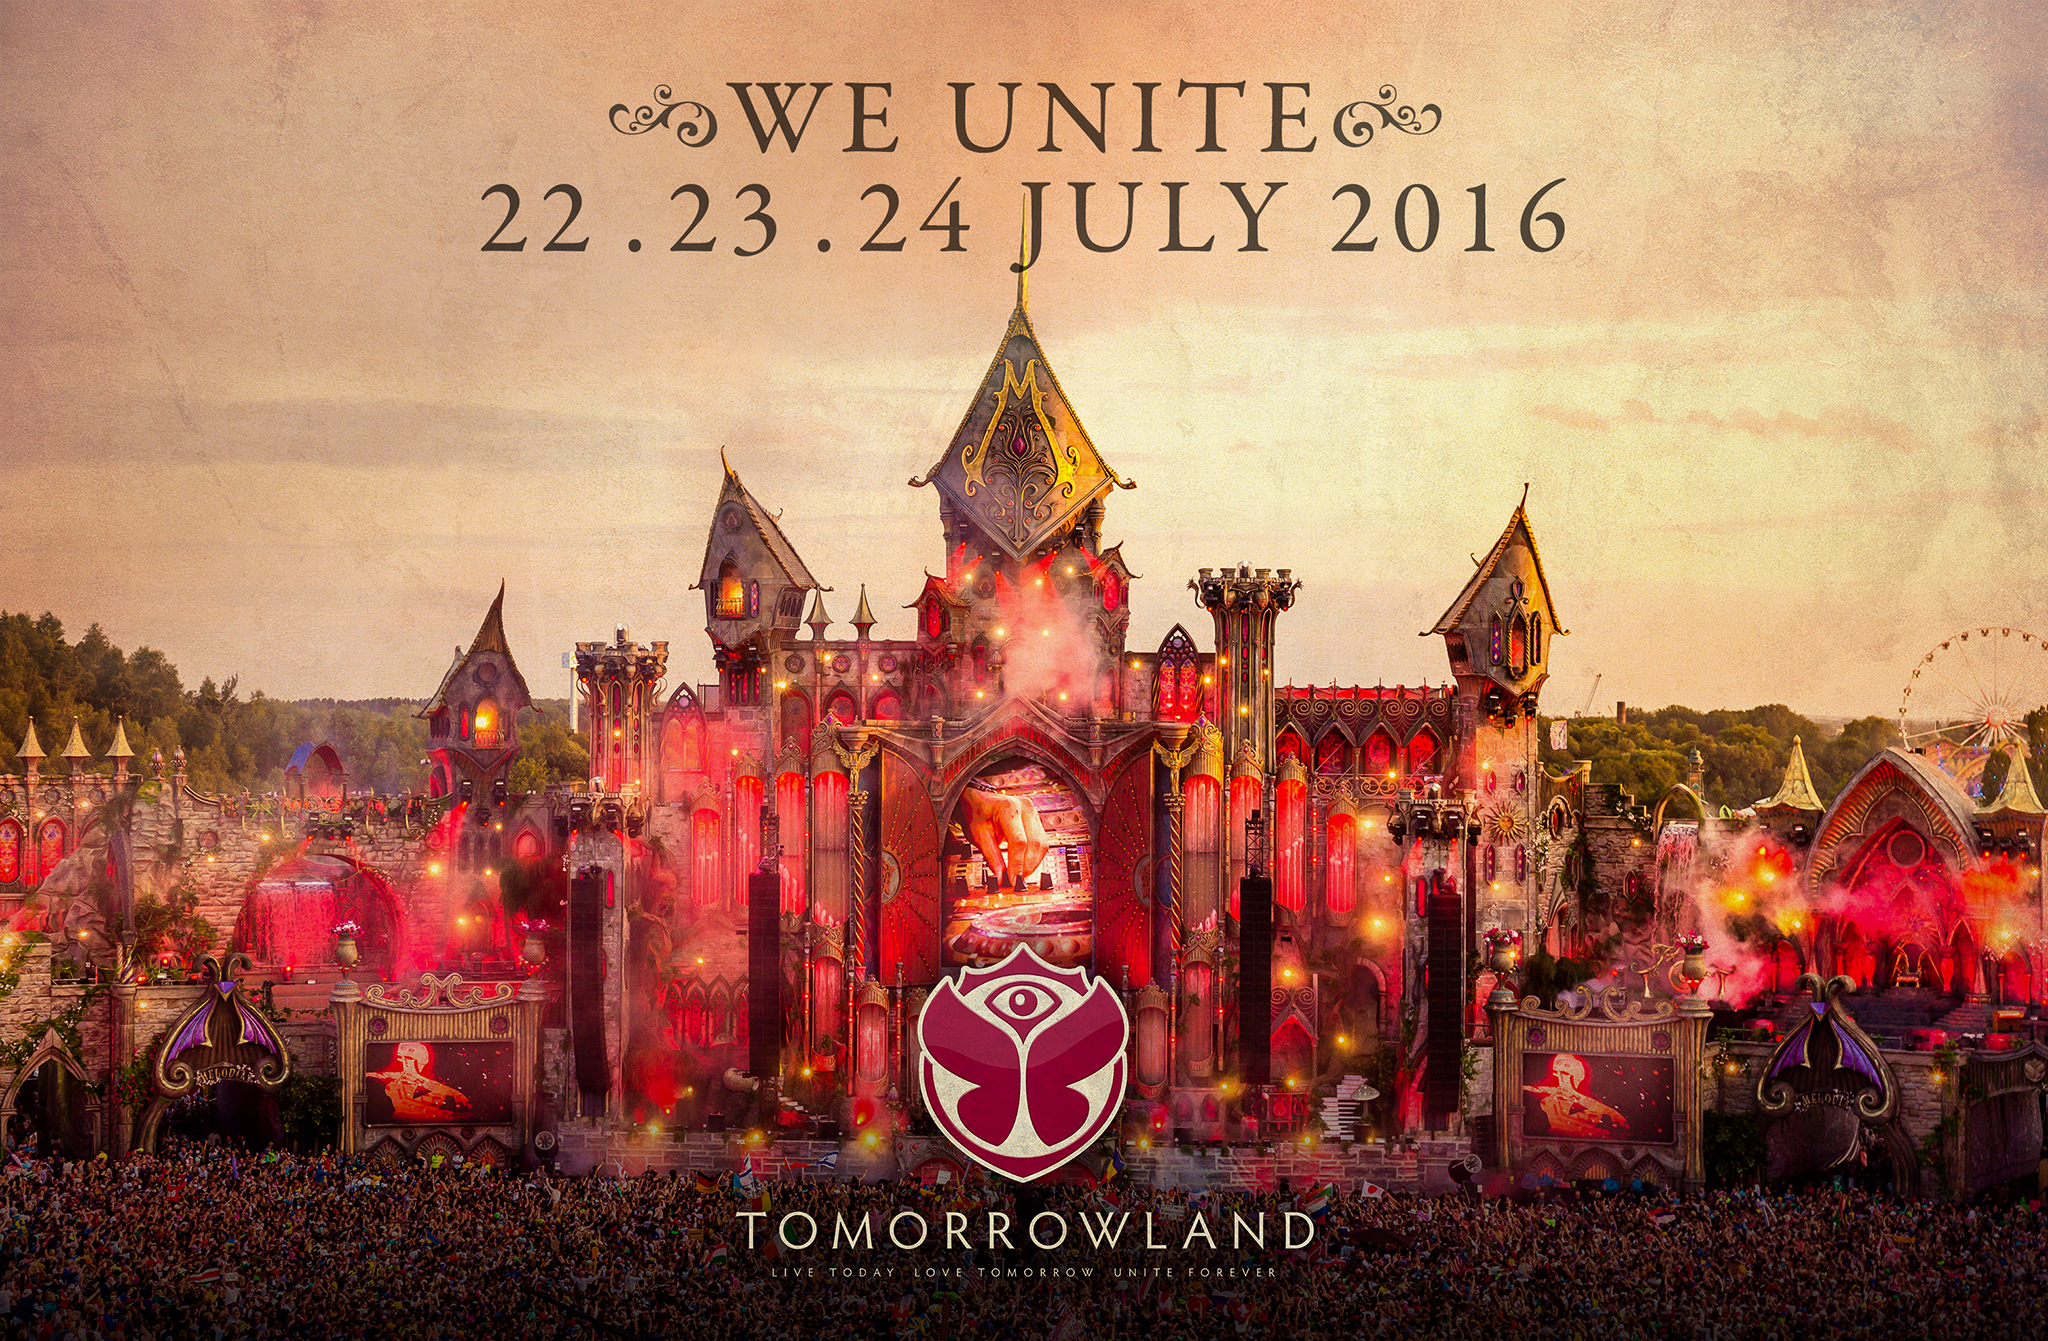 Tomorrowland Bélgica 2016